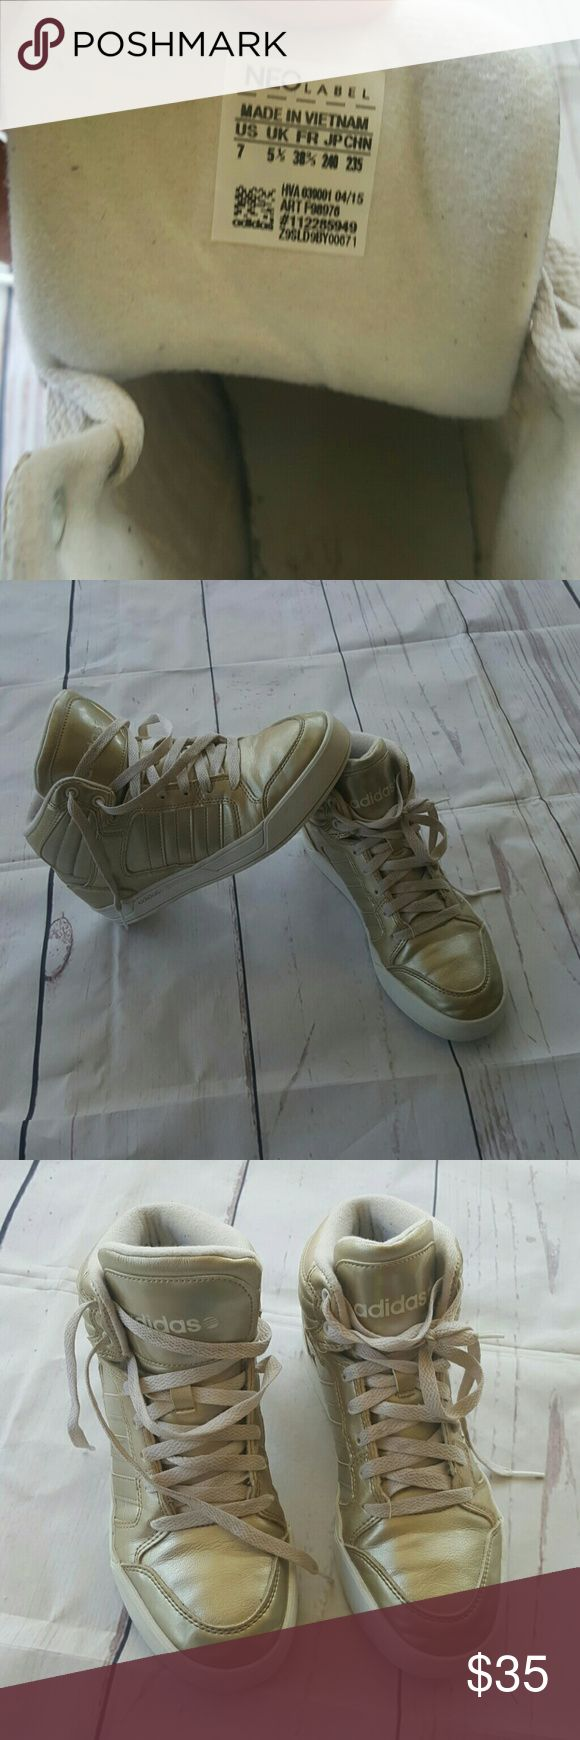 Sz 7 Adidas neo label gold high top These are gold high top adidas NEO label US Women's size 7 really good used condition no rips stains or tears on the Outside Inside is pretty good except picking from fabric Adidas Shoes Sneakers